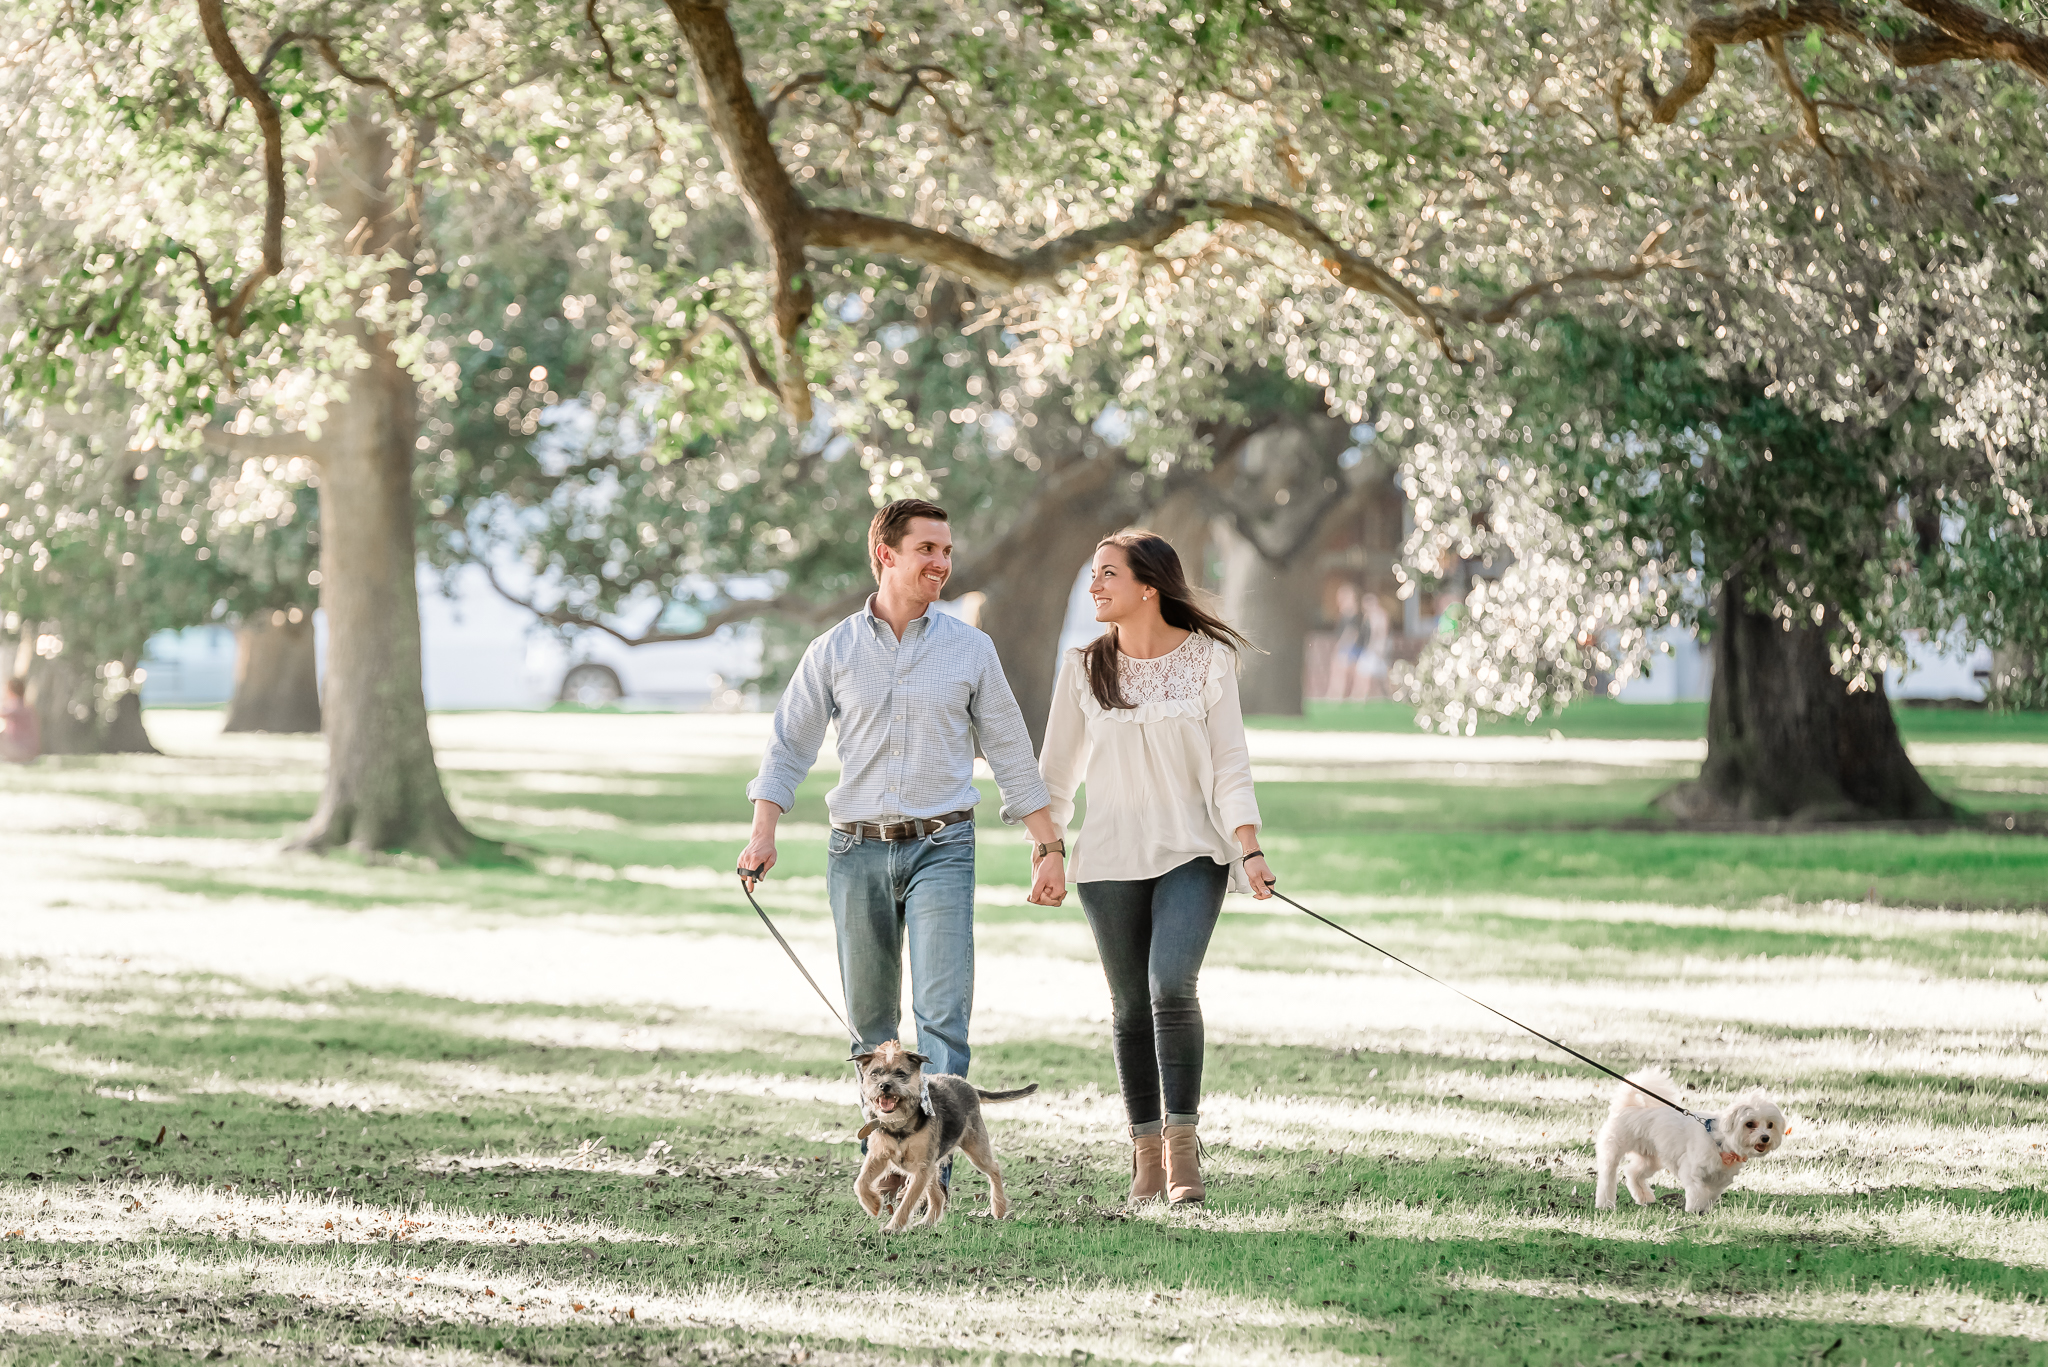 Engagement photos at White Point Garden, Laid back and sweet engagement photos with dogs, Downtown Charleston SC Engagement Photographer